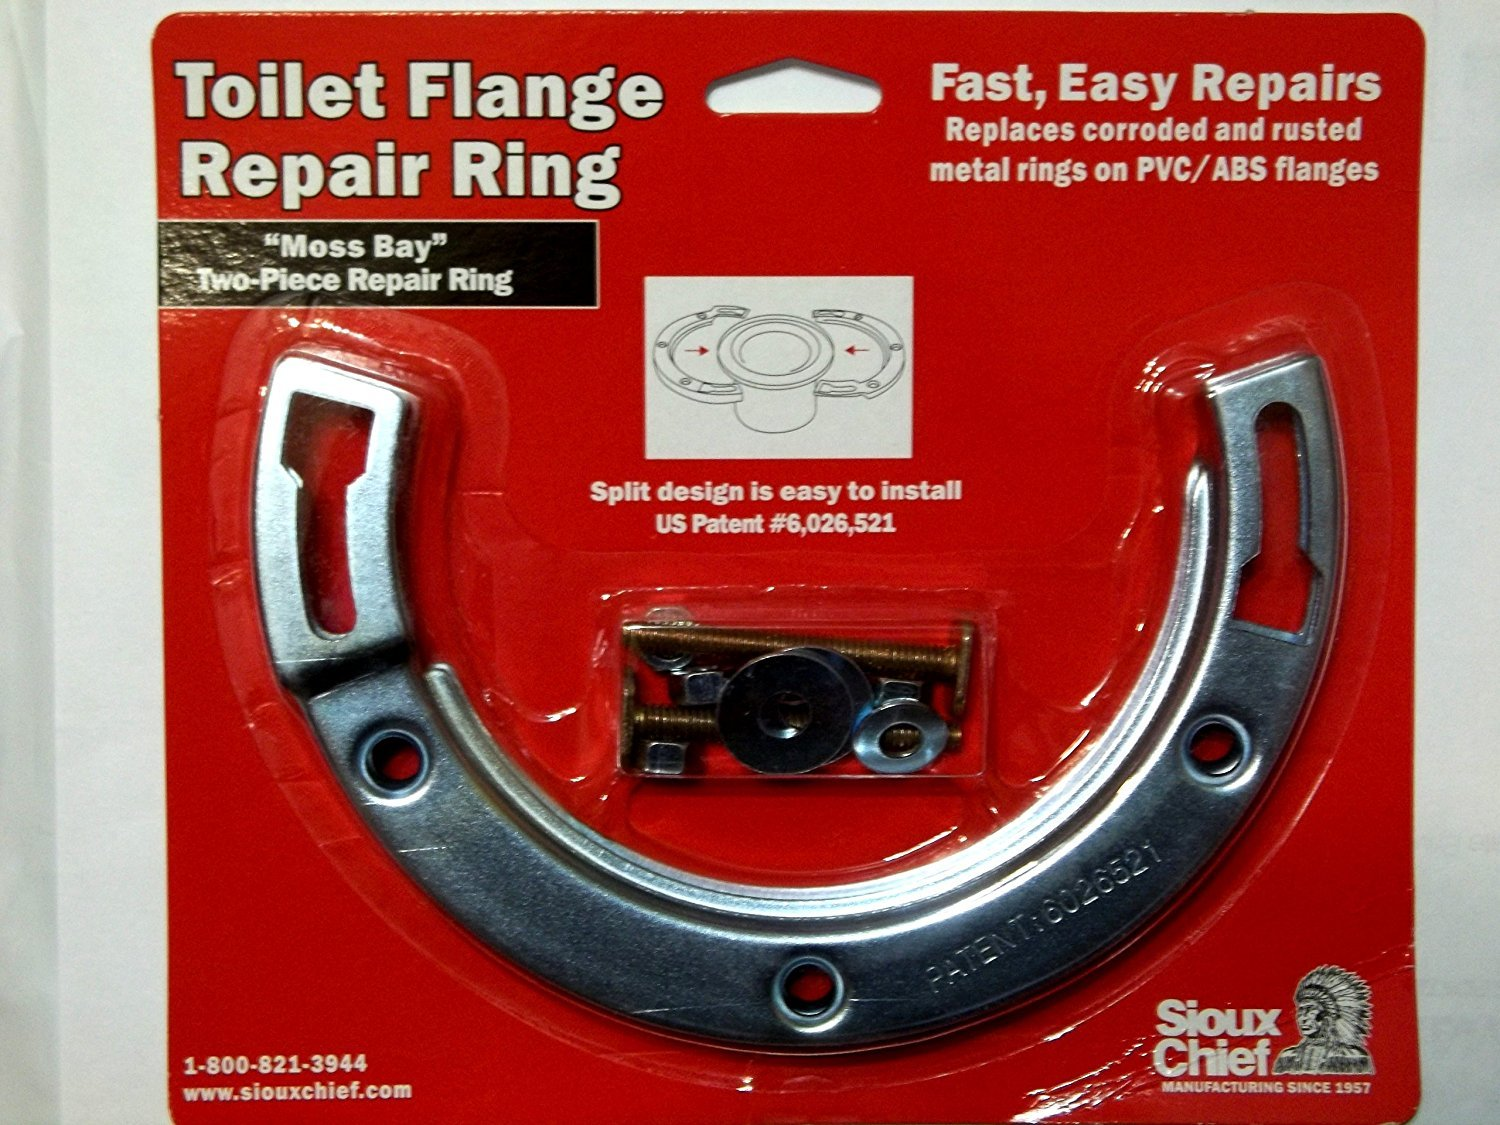 Amazon.com: Sioux Toilet Flange Repair Ring: Home Improvement